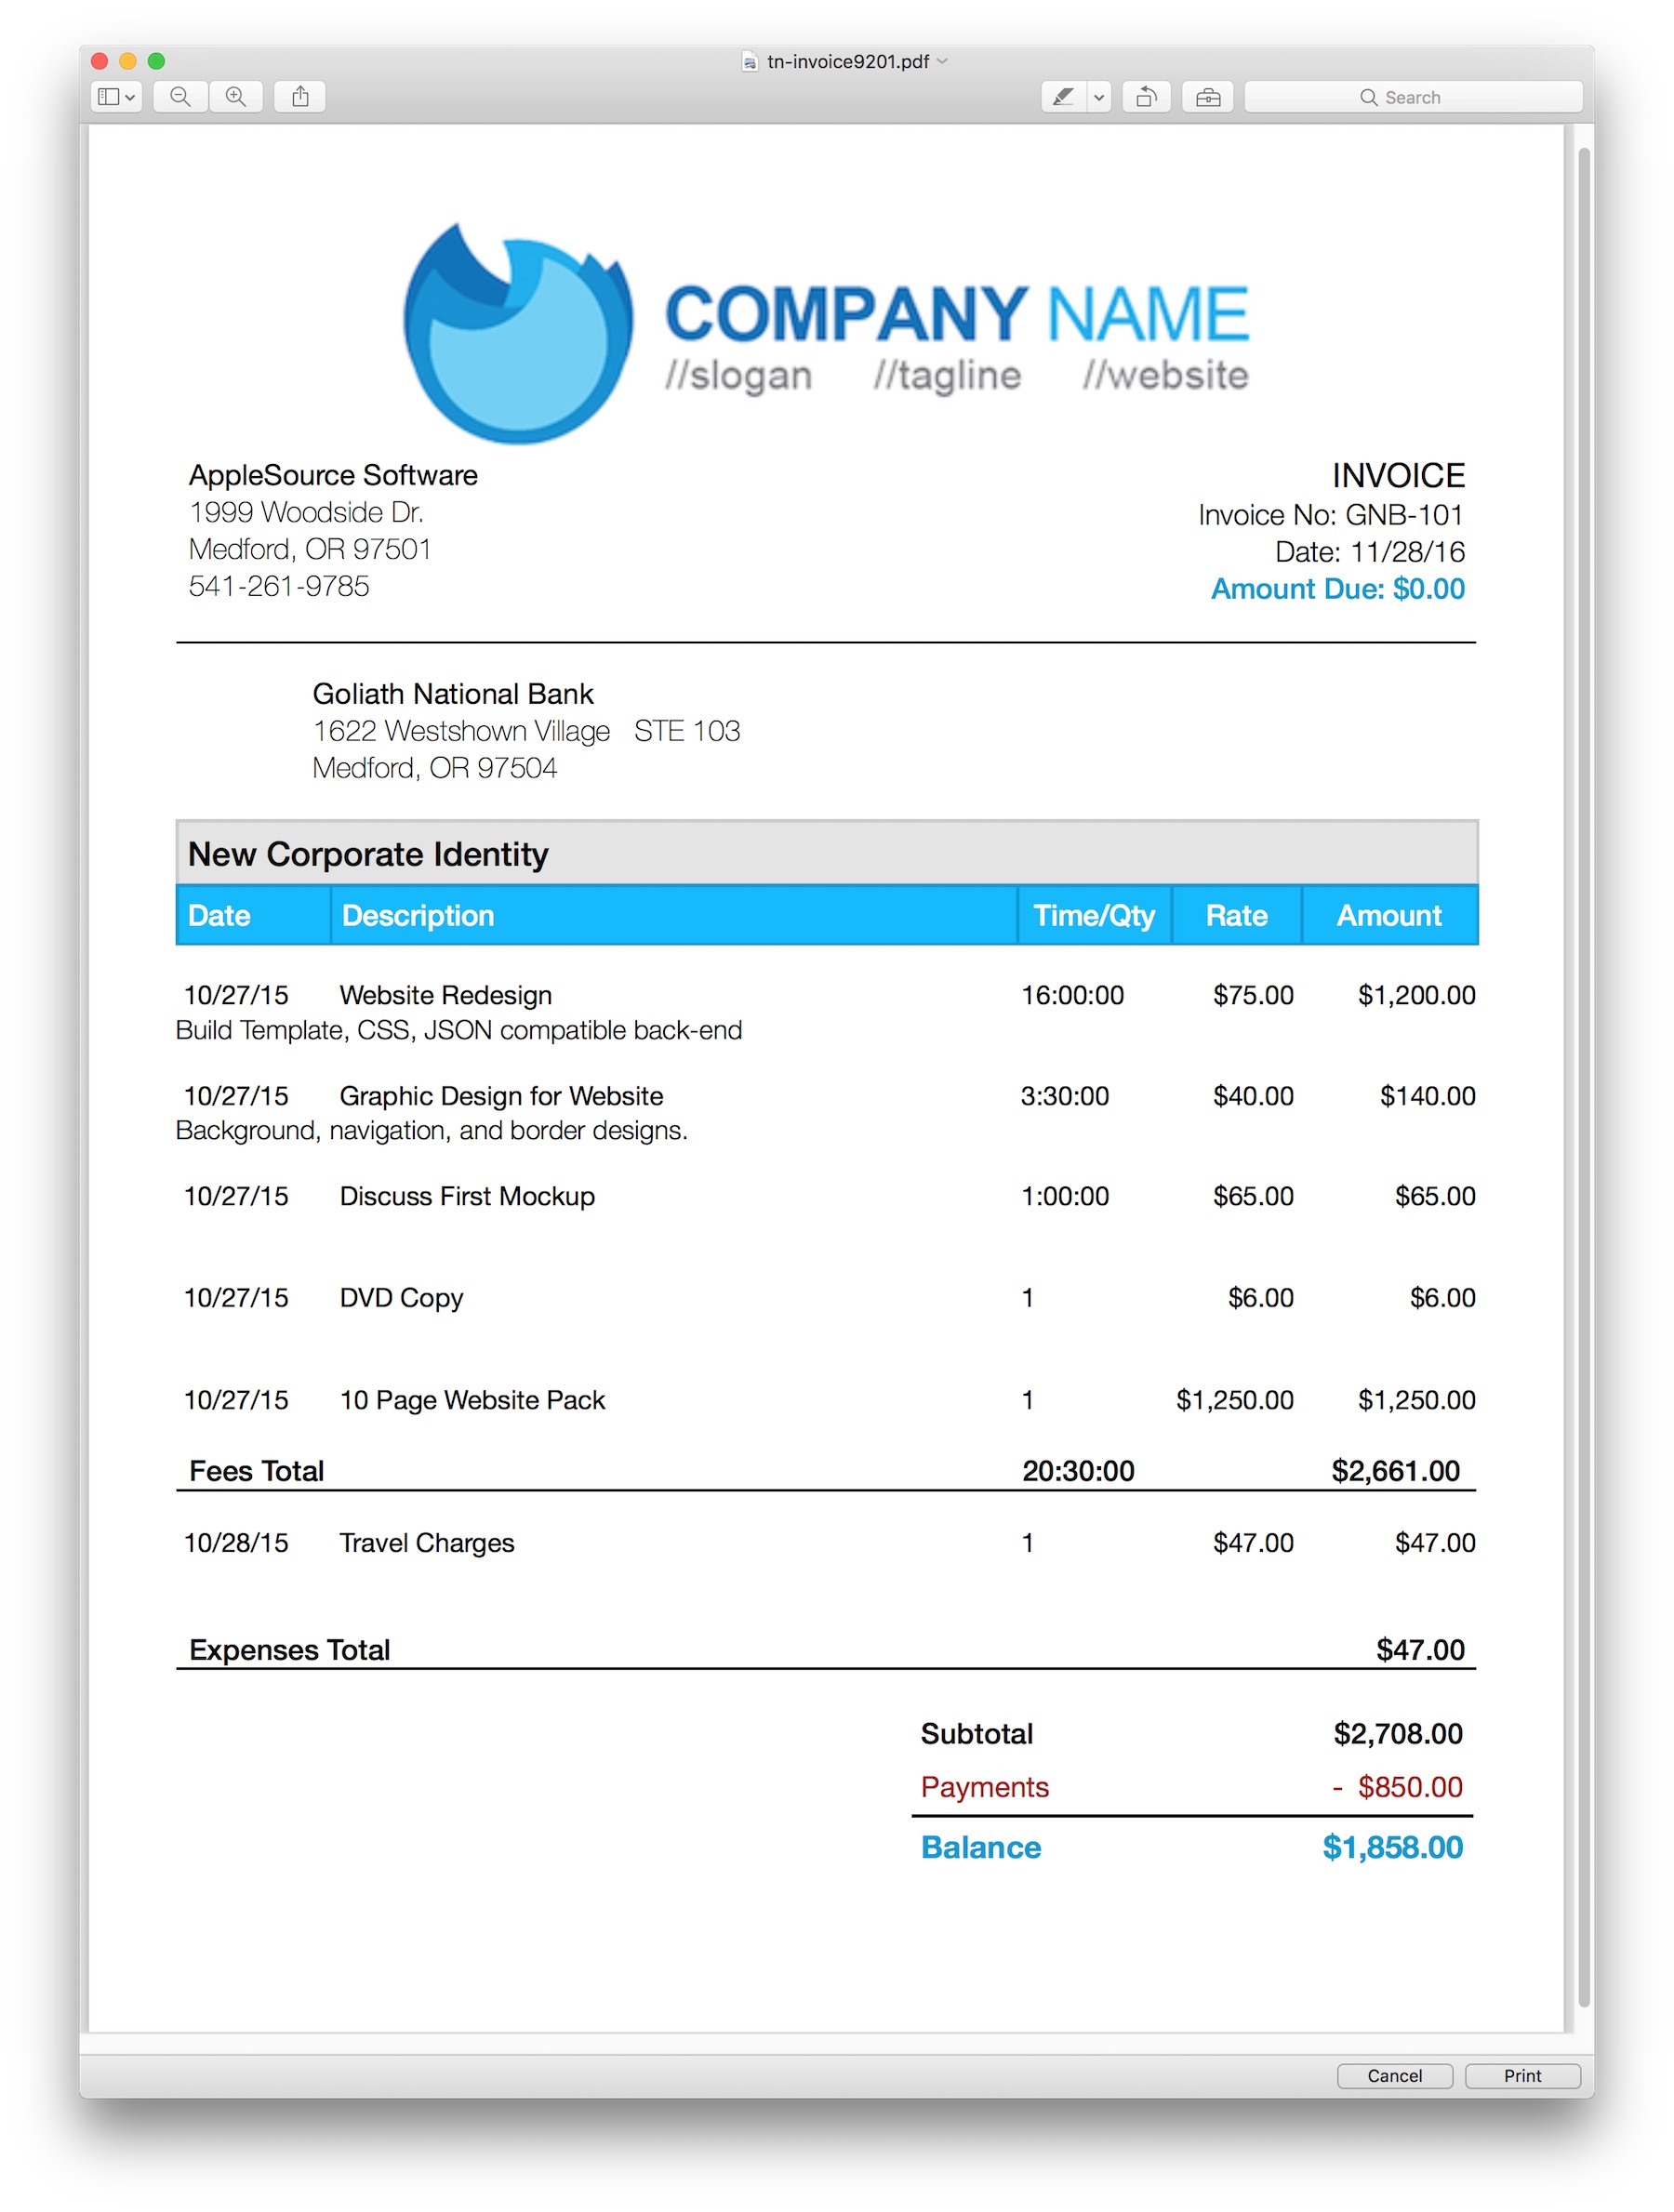 AppleSource Software > TimeNet Invoice Templates - Time Tracking ...